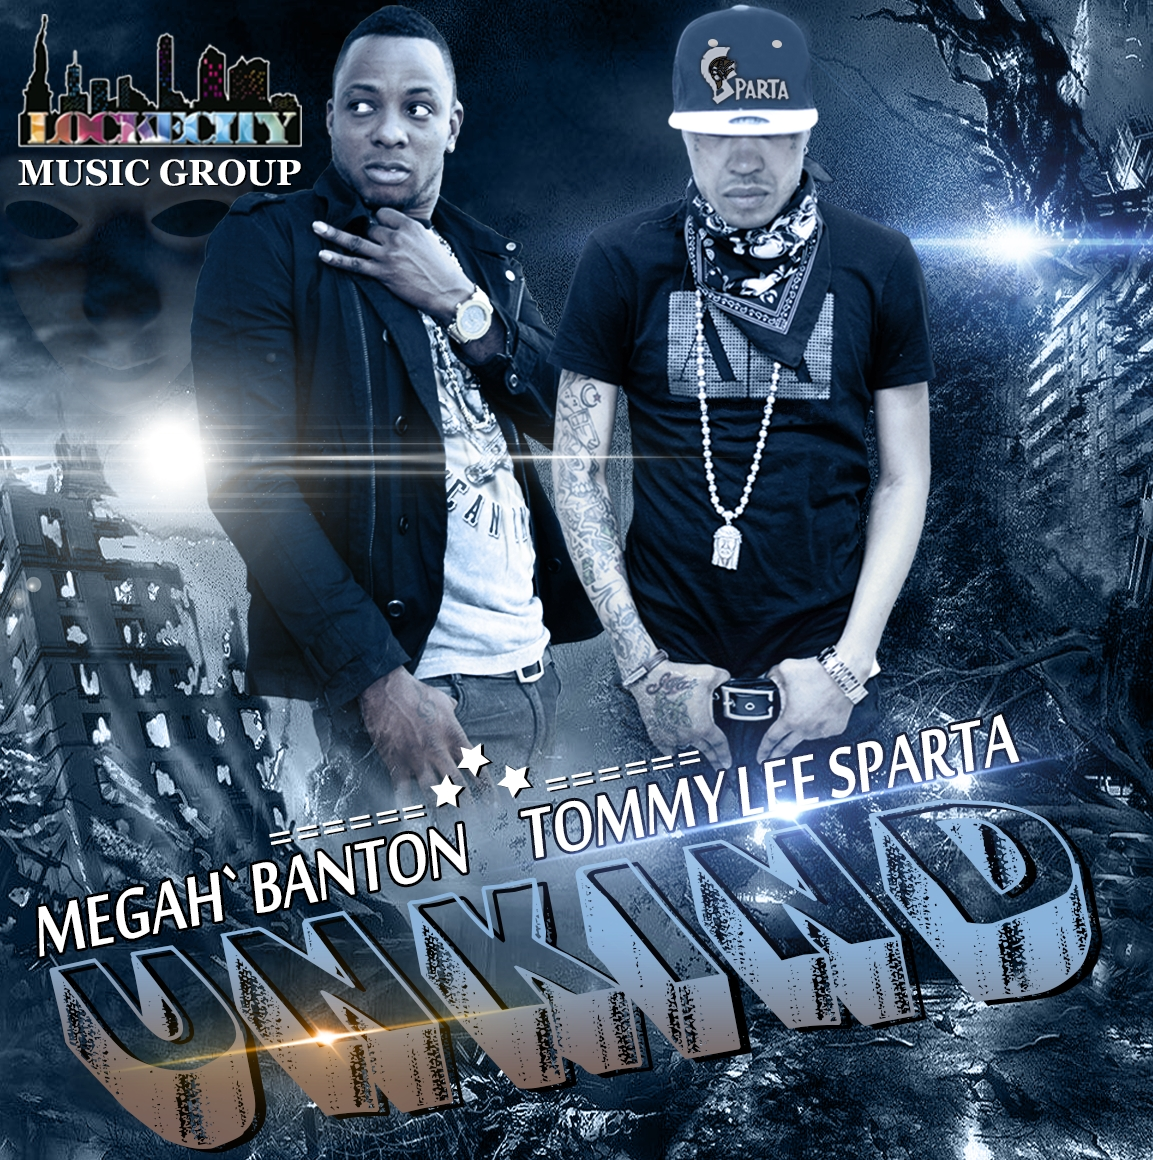 TOMMY LEE AND MEGAH BANTON – UNKIND (EDIT & RAW) – LOCKECITY MUSIC GROUP